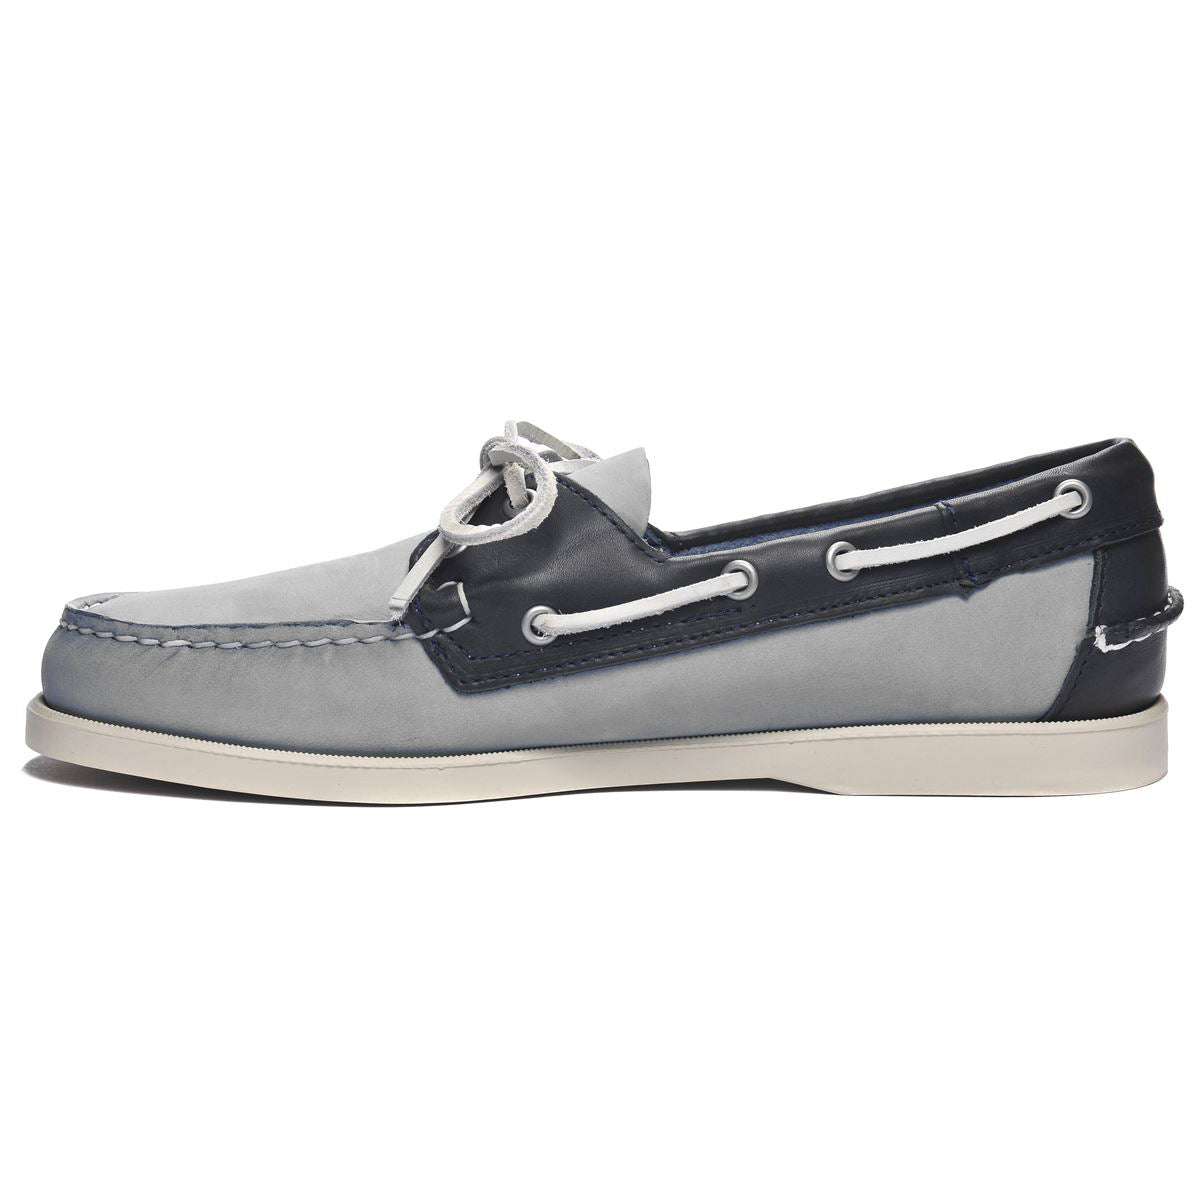 PORTLAND SPINNAKER NBK FGL - LIGHT GREY/NAVY/WHITE